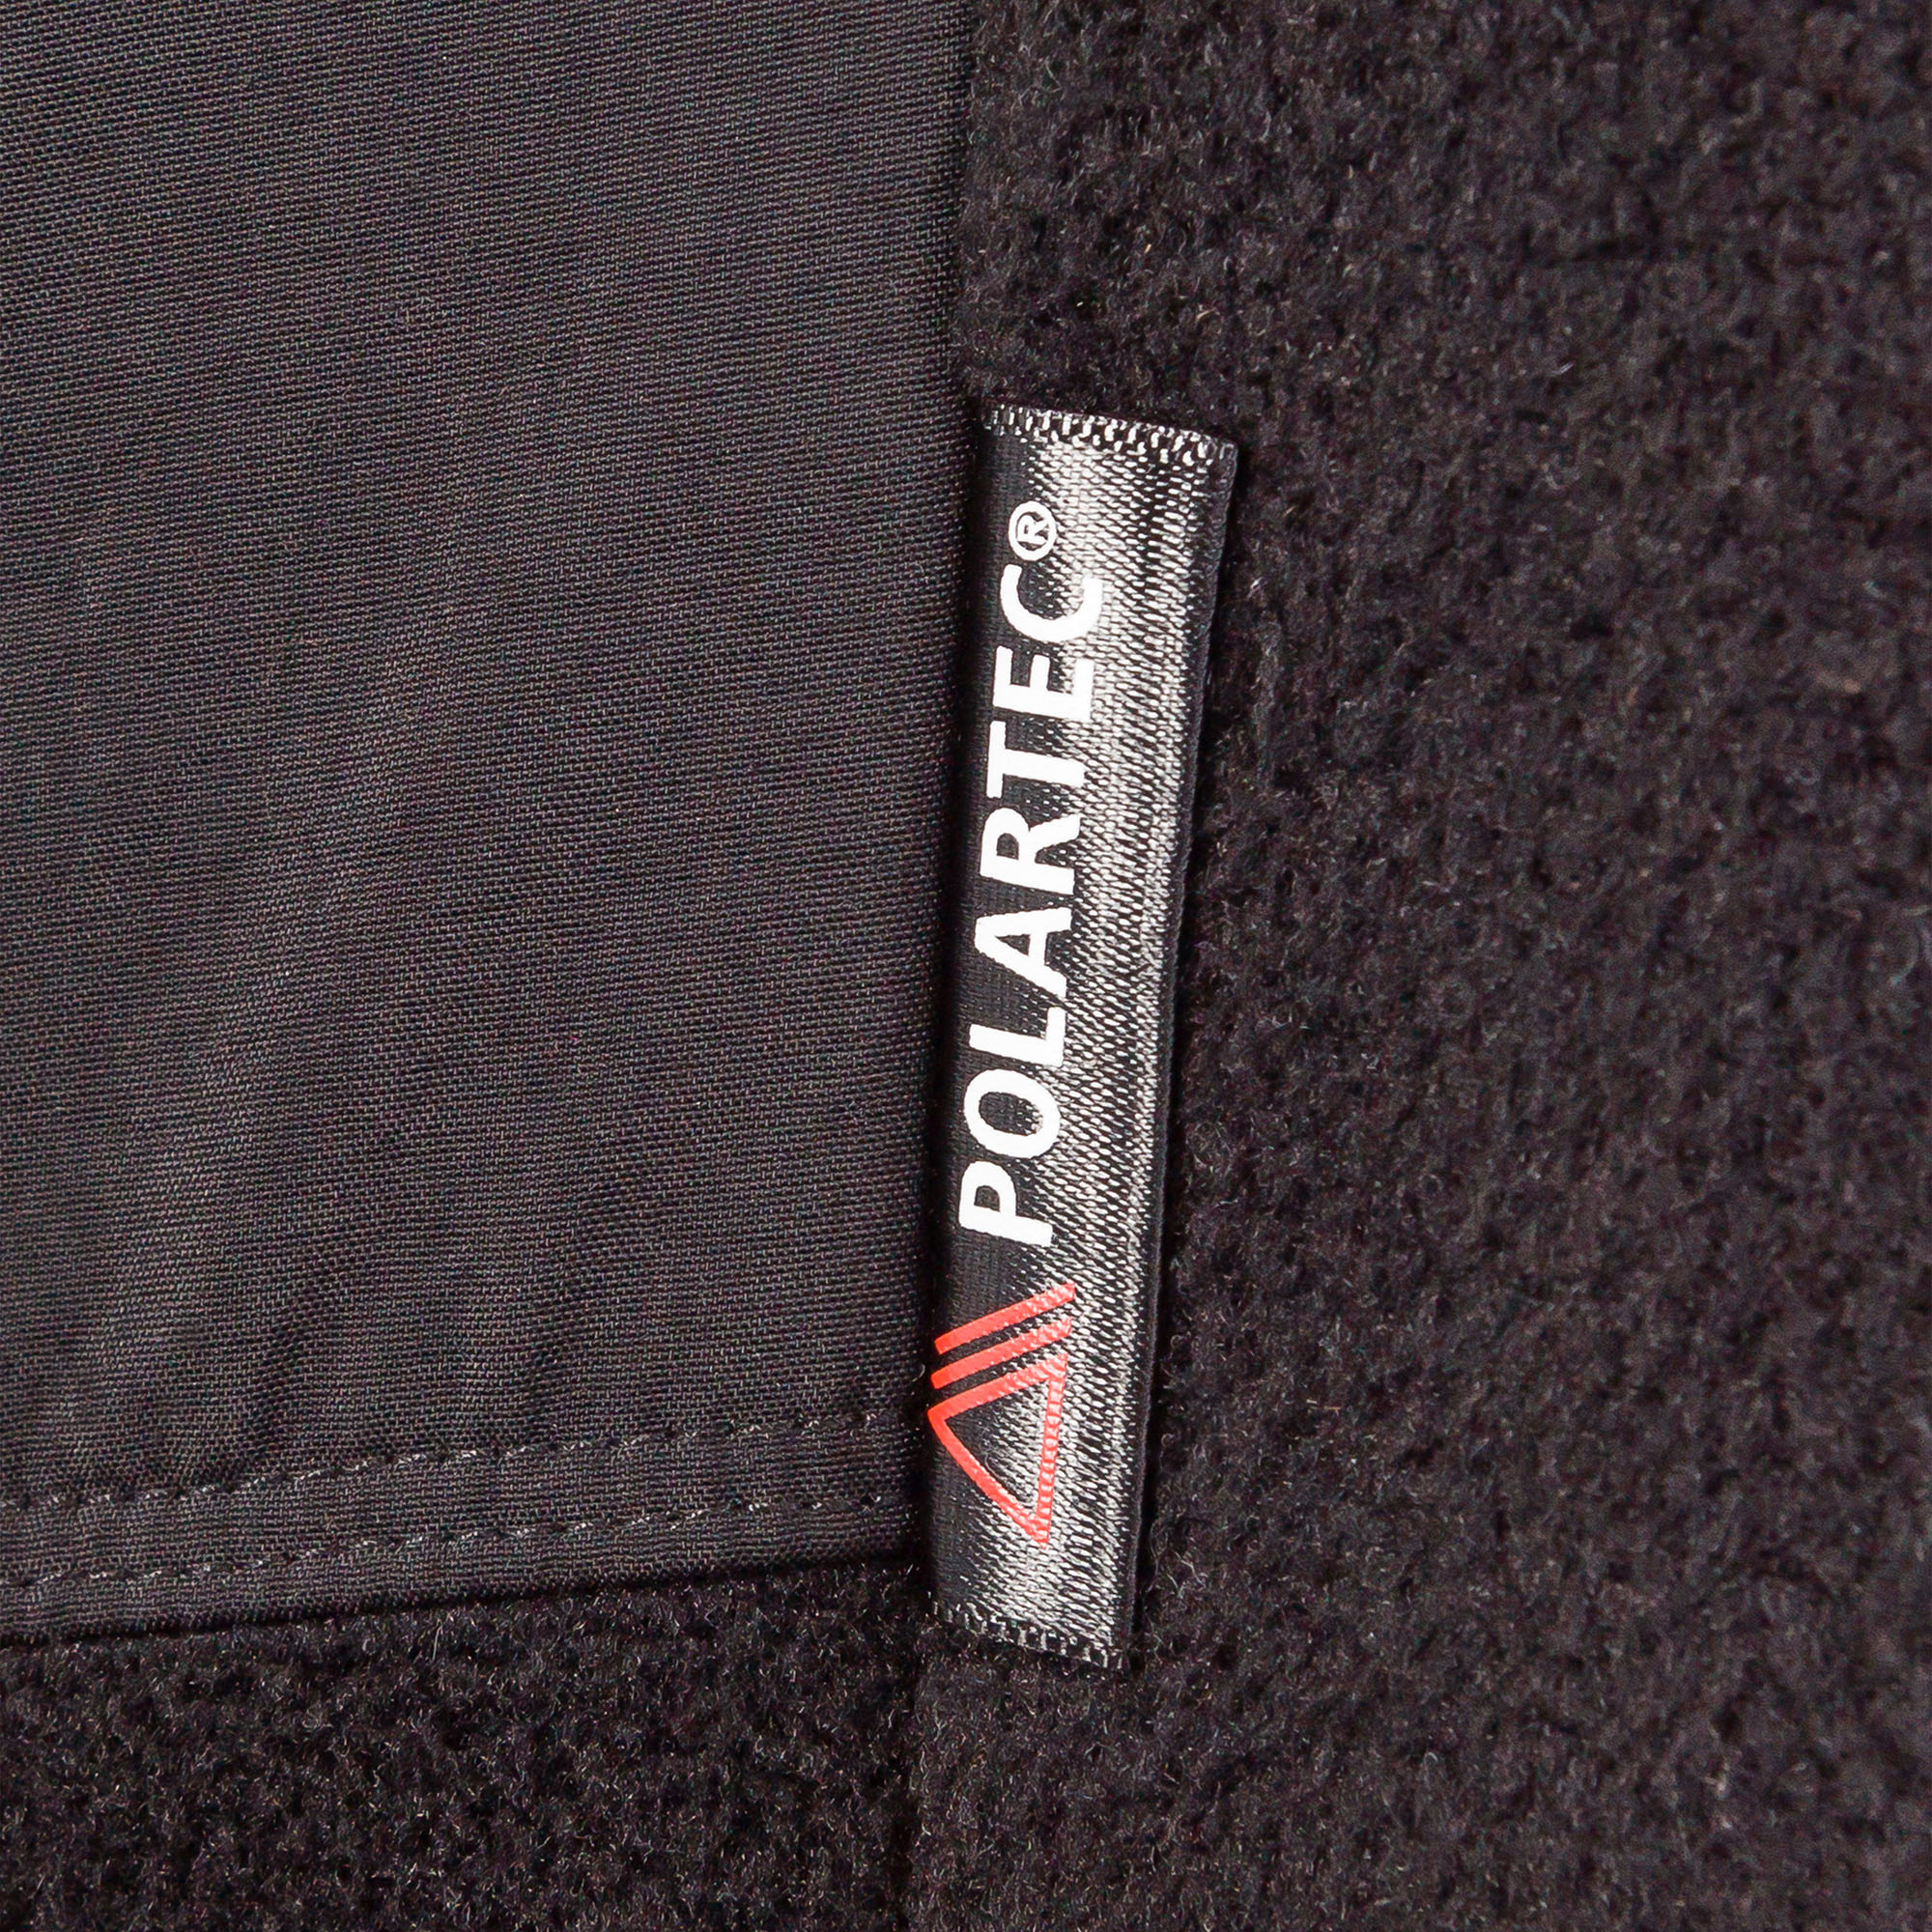 HELLY HANSEN X FUTUR - PANTS - DETAIL 3